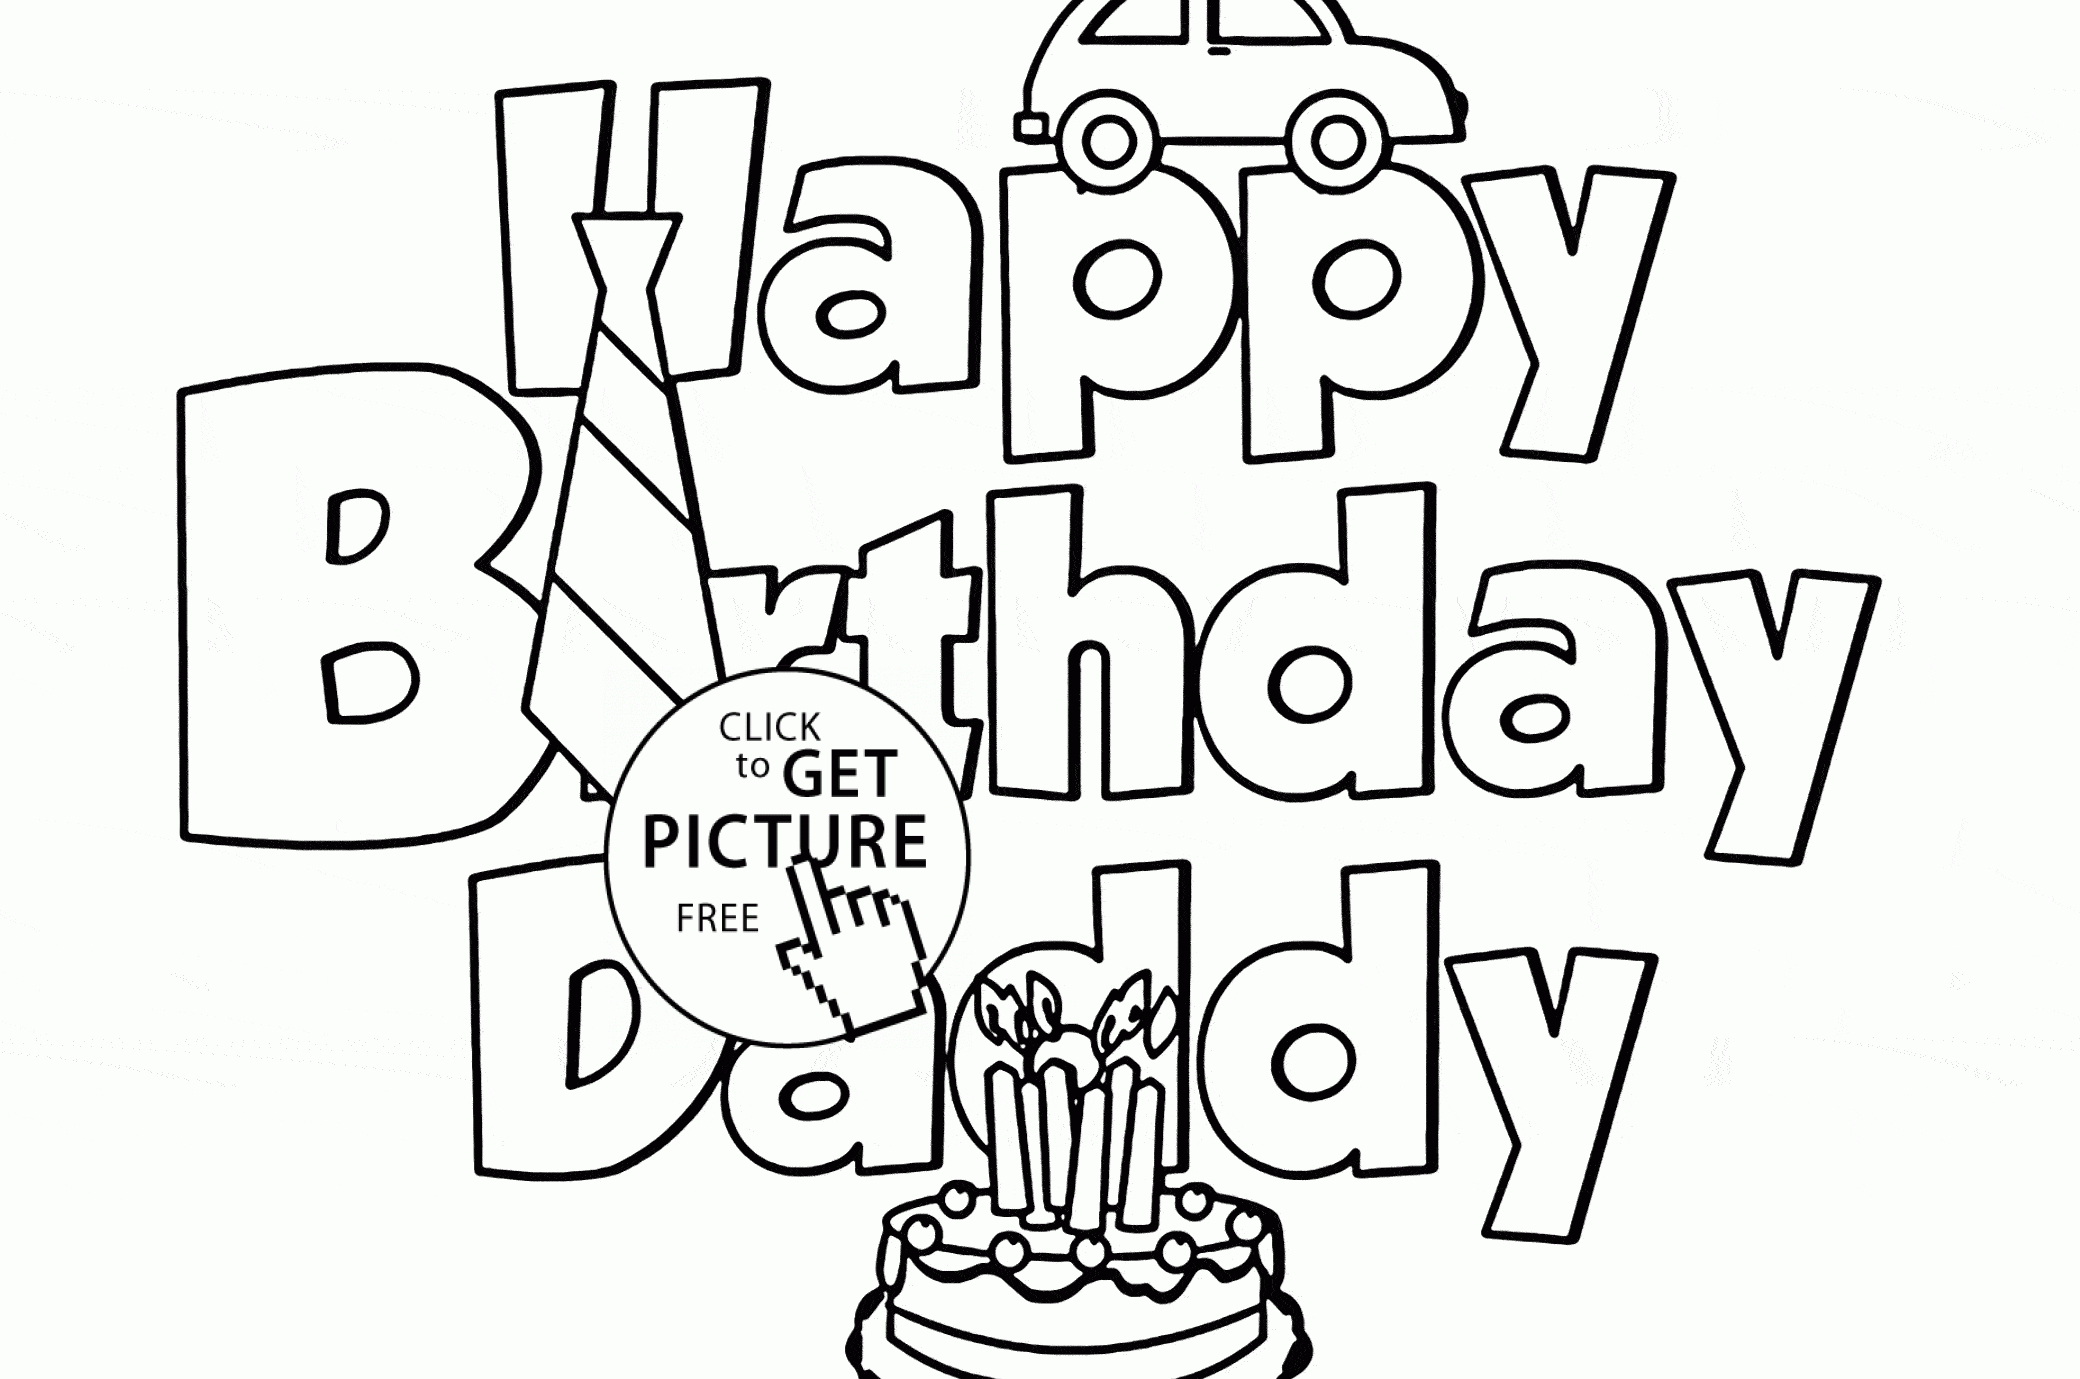 Printable Birthday Cards For Dad Free Printable Birthday Cards For - Free Printable Birthday Cards For Dad